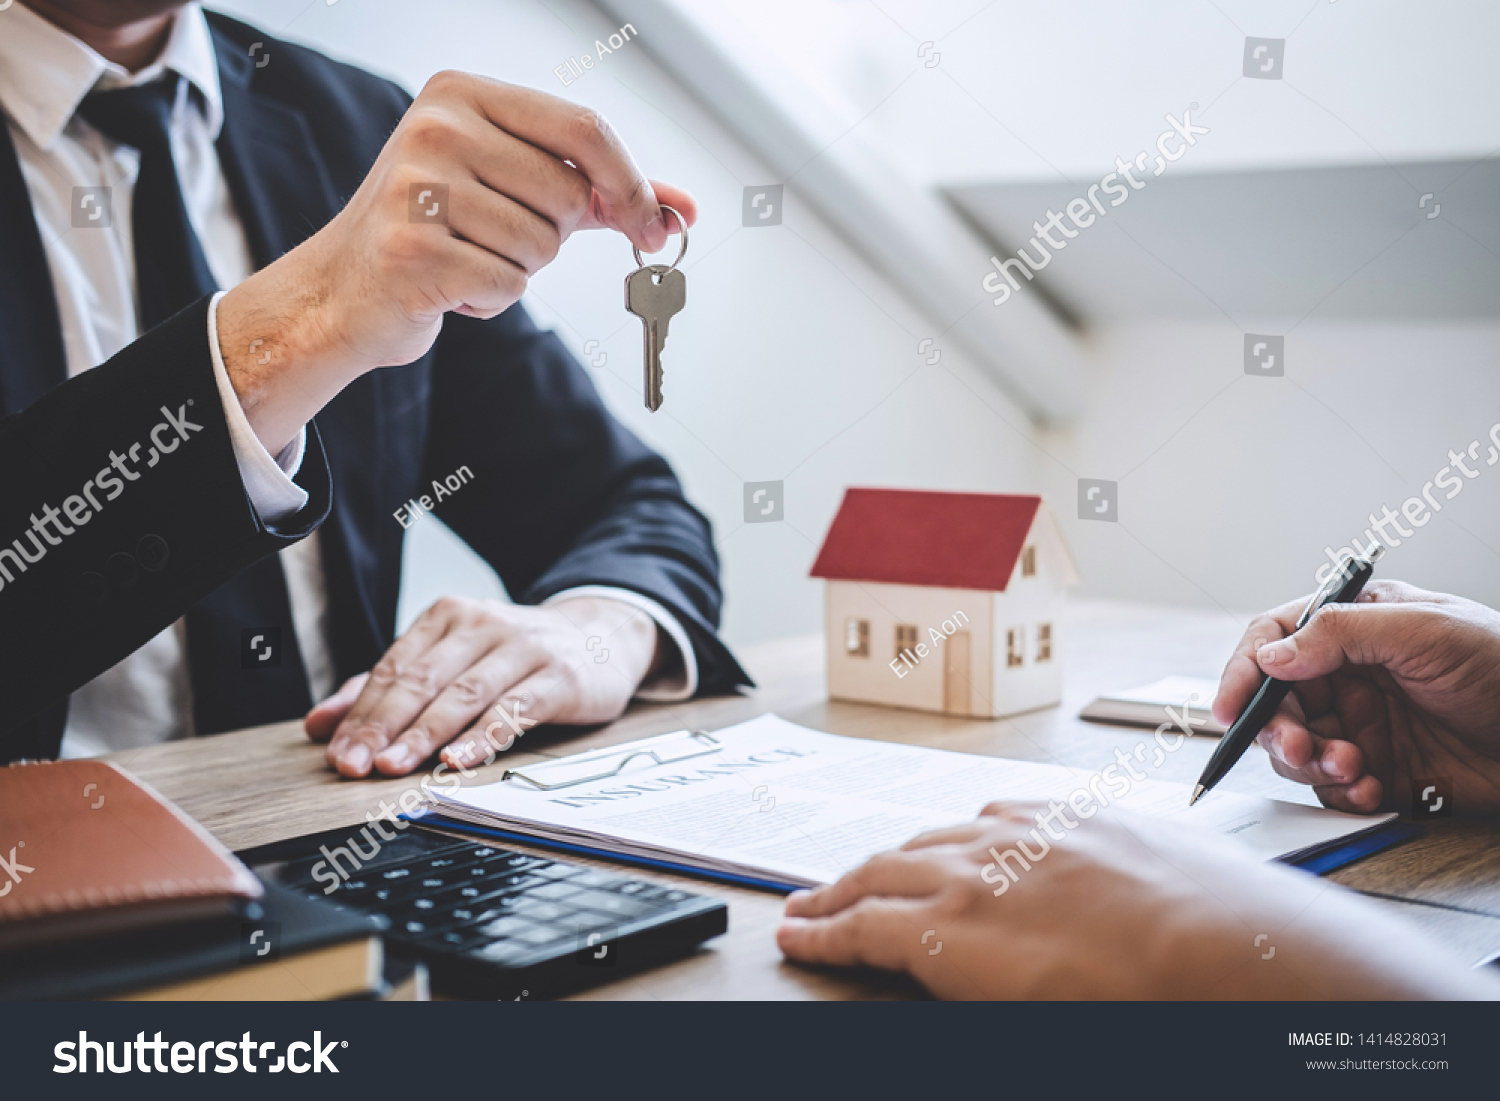 Estate agent giving house keys to client after signing agreement contract real estate with approved mortgage application form, concerning mortgage loan offer for and house insurance. #1414828031